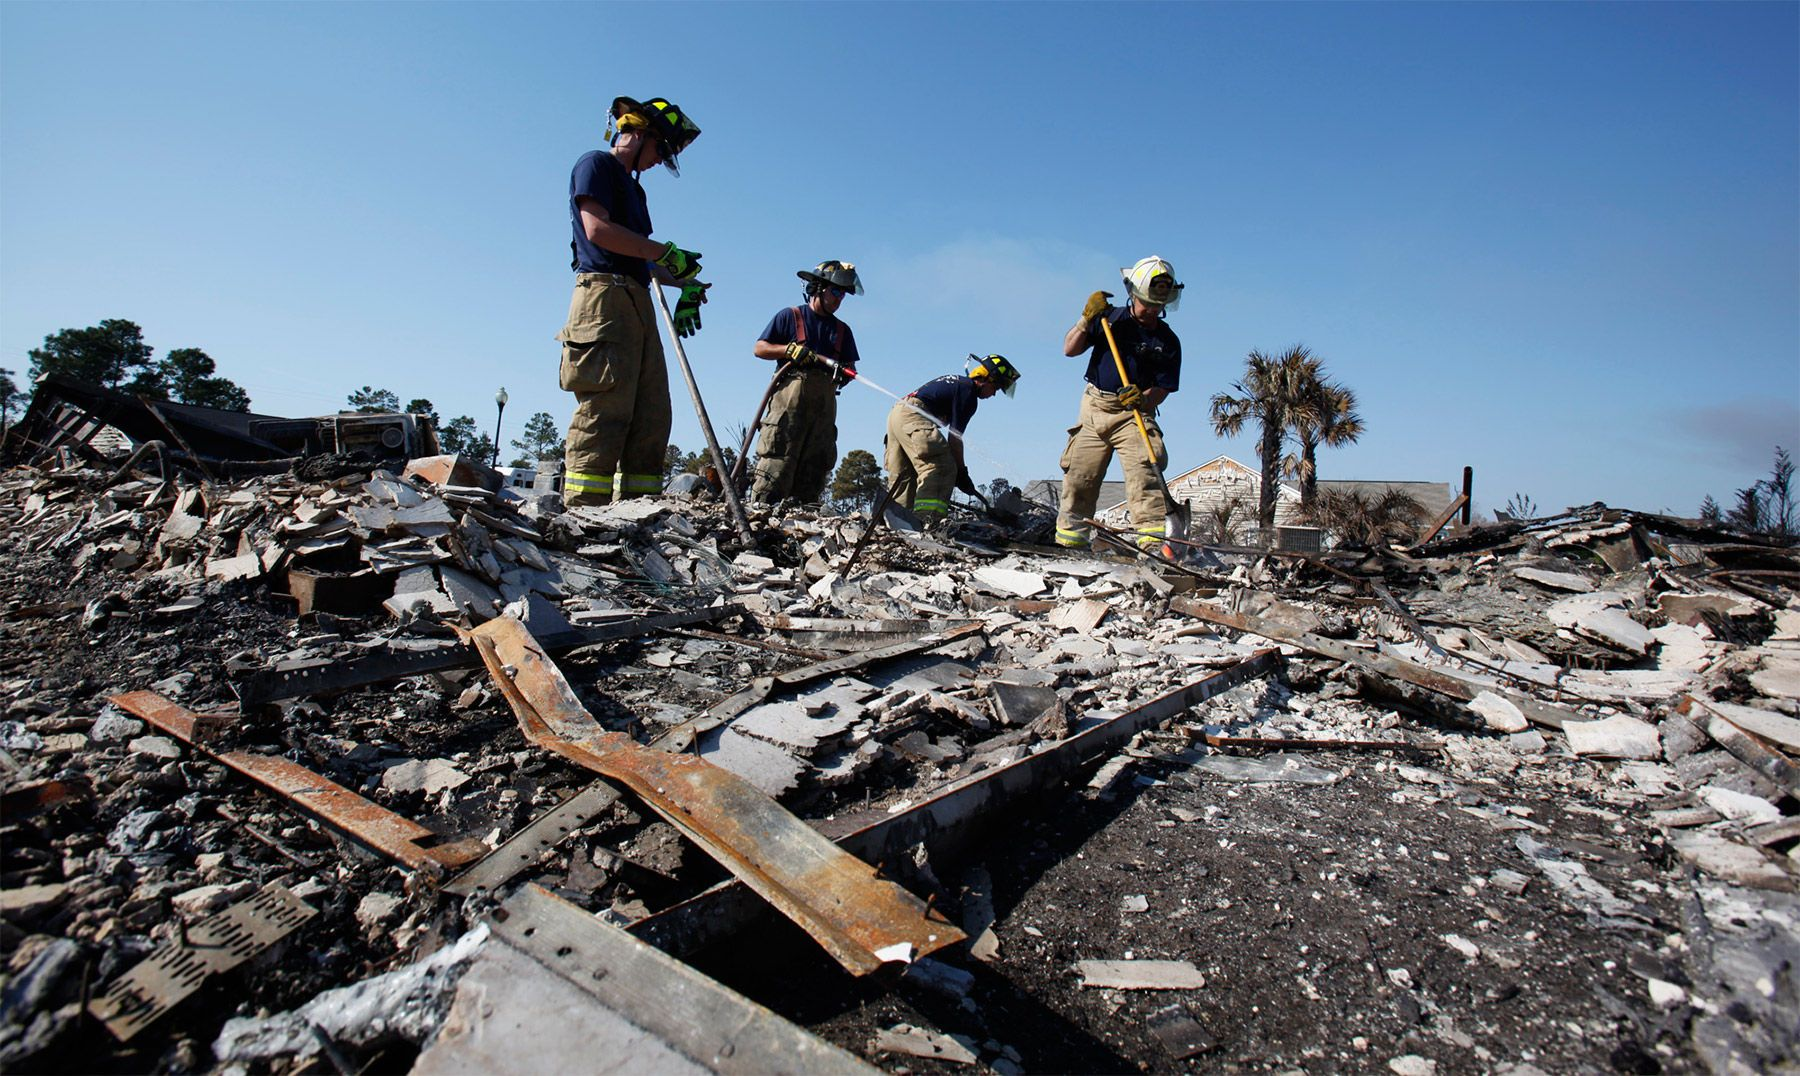 Firefighters with the Sumter Fire Department work to put out hot spots on Swift Street in Barefoot Resort Friday afternoon in North Myrtle Beach.